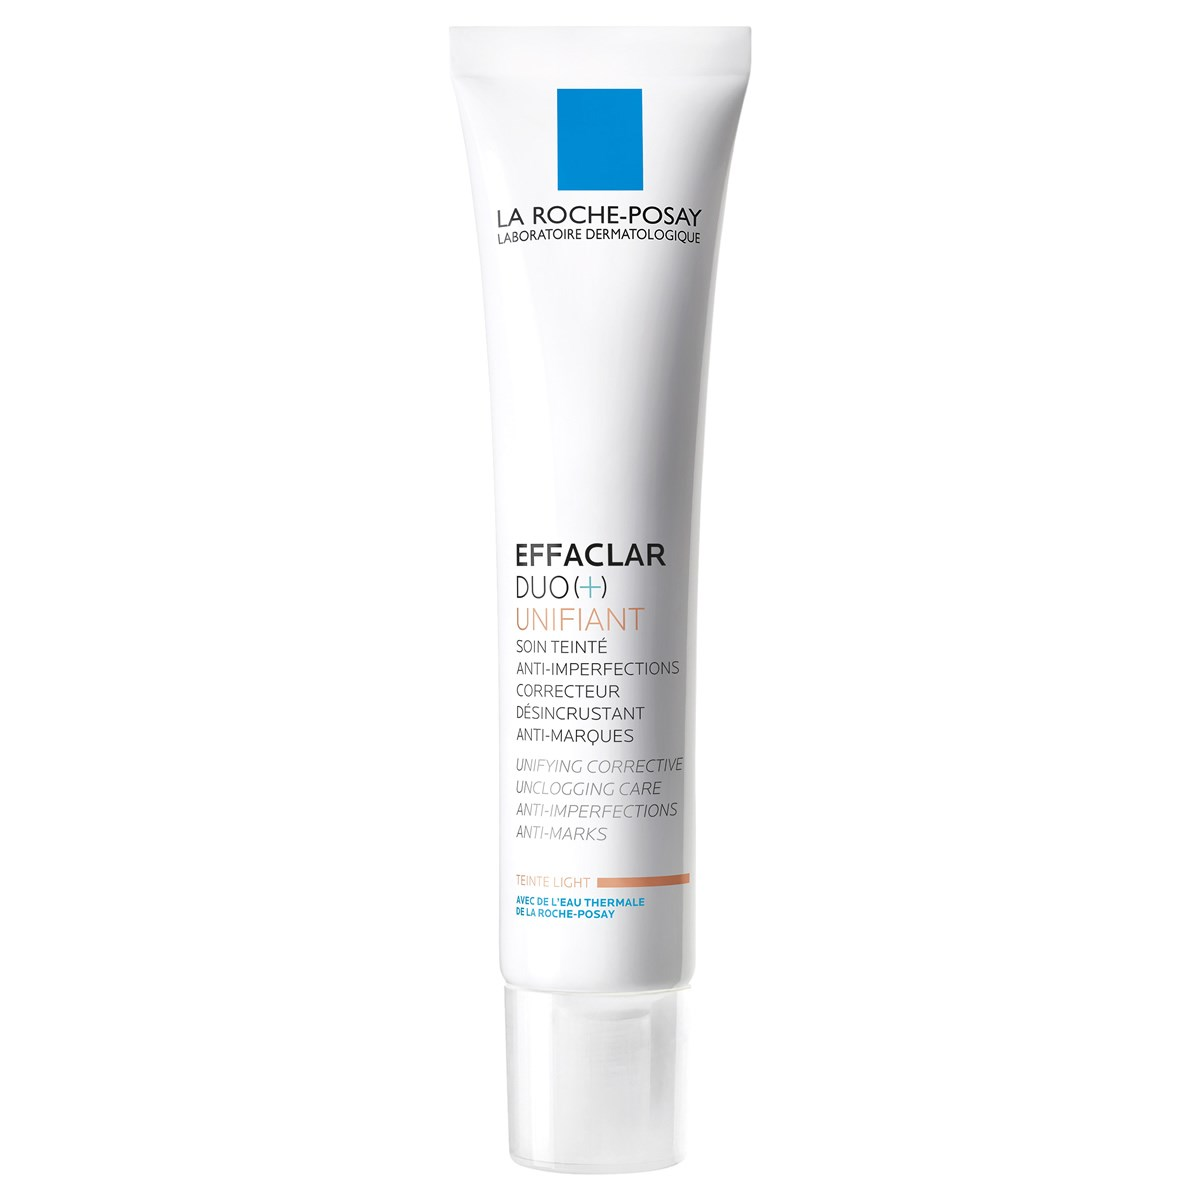 La Roche-Posay Effaclar Duo(+) Unifiant Light